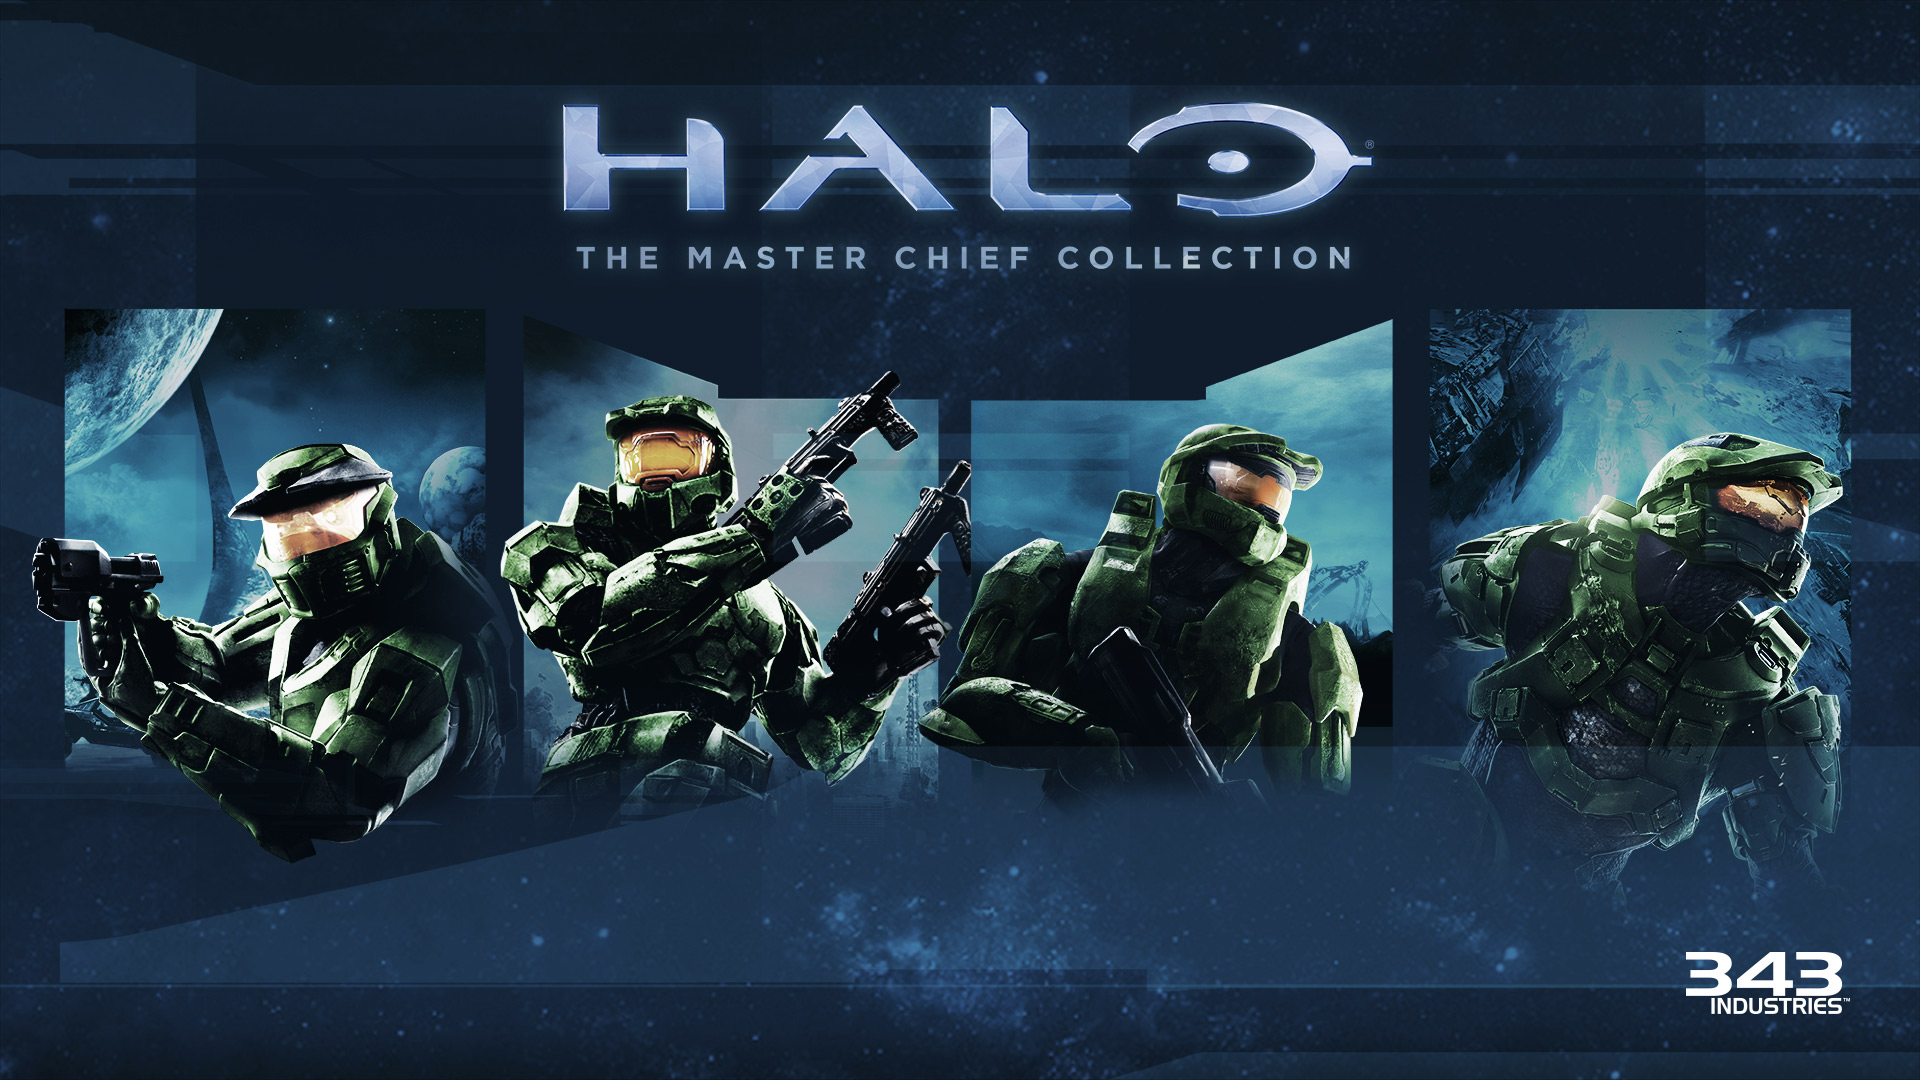 Halo The Master Chief Collection Xbox One X Update Out Today Thisgengaming